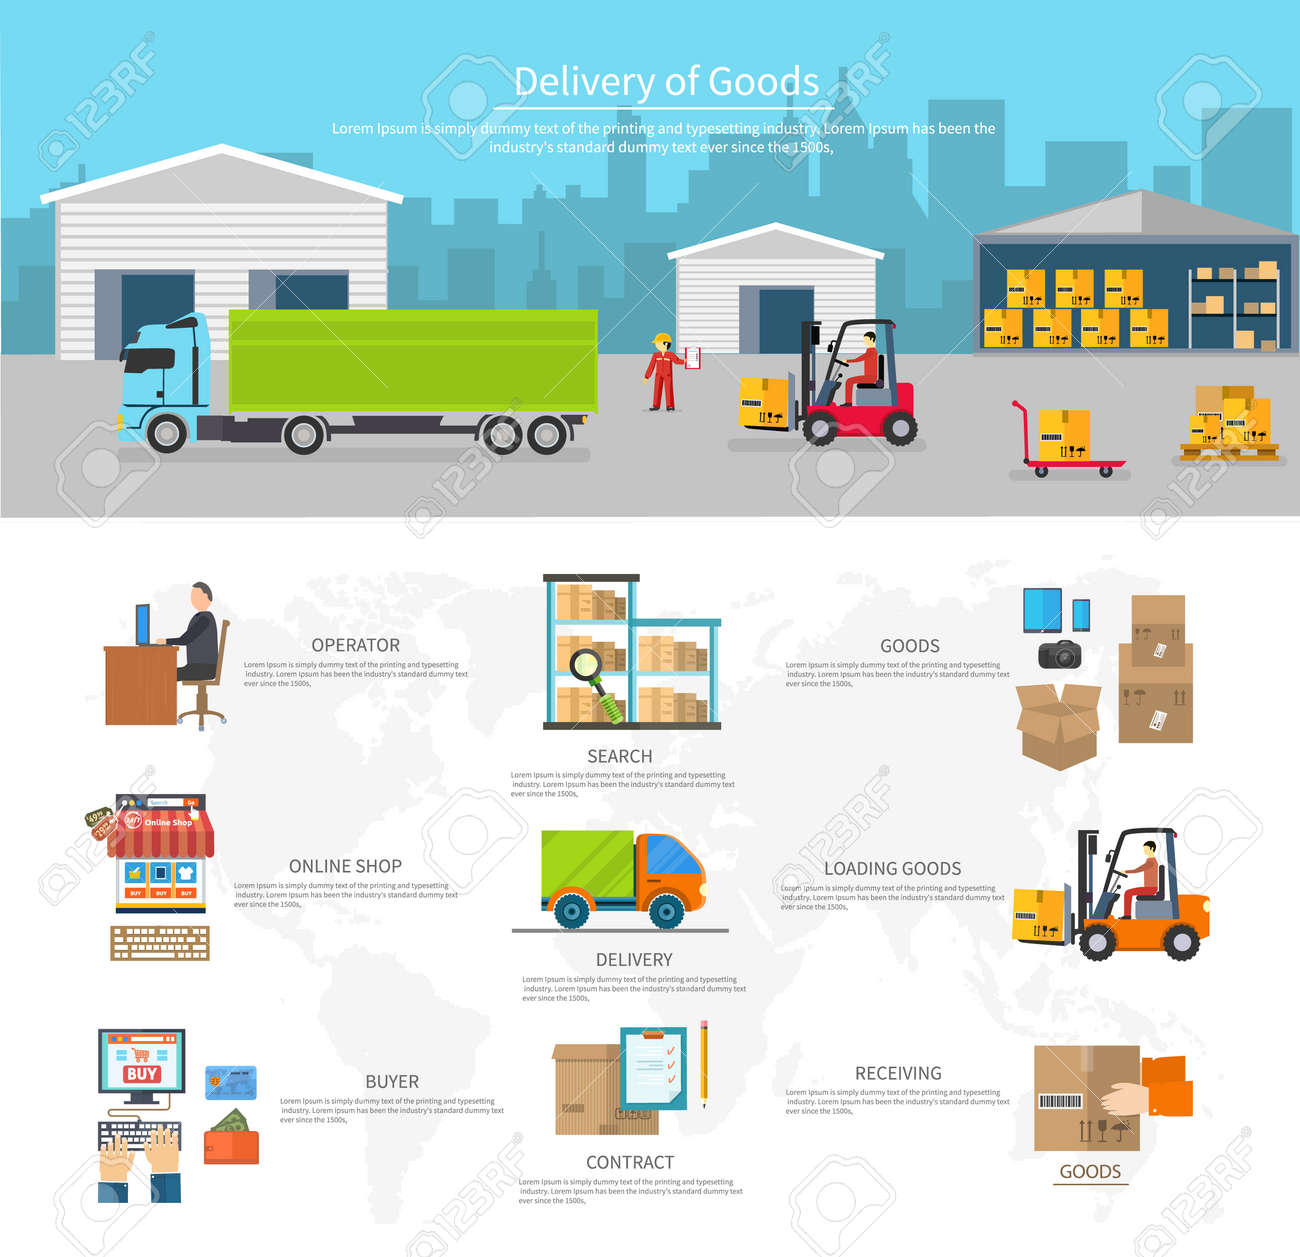 Delivery of goods logistics and transportation. Buyer and contract, loading and search, operator shop on-line, logistic and transportation, warehouse service illustration Stock Vector - 45981936